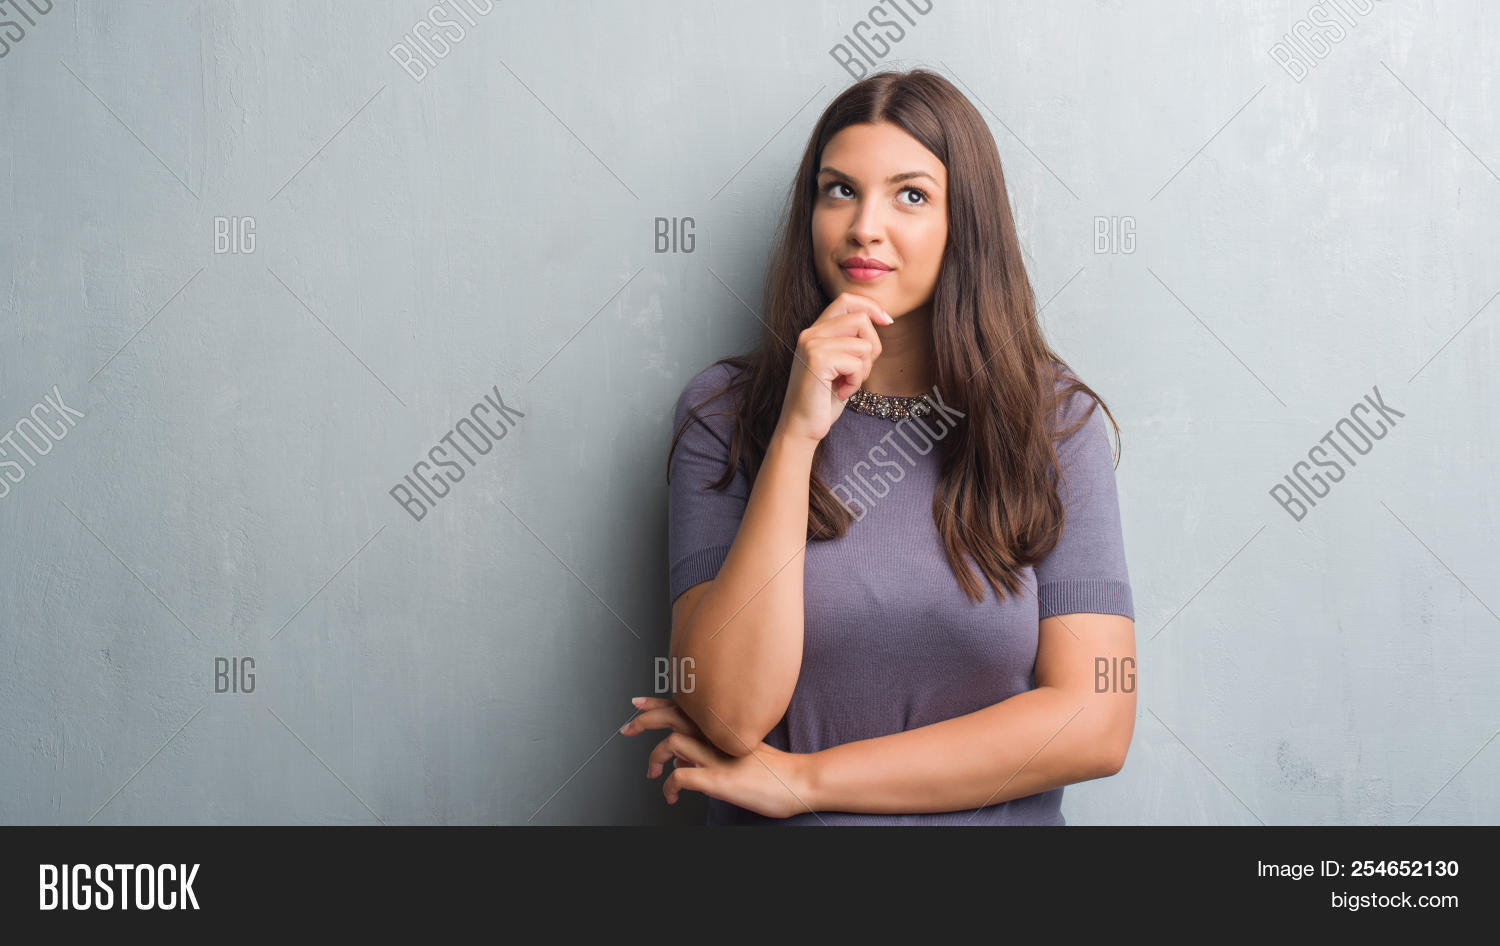 background,belief,brain,brunette,chin,concentration,concept,confident,confused,consider,convinced,cool,doubt,elegant,expression,face,fashion,female,girl,grey,grunge,hand,hispanic,idea,indoors,latin,long hair,looking,model,natural,one,opinion,pensive,perfect,question,reason,reasoning,serious,studio,success,think,thinking,thought,thoughtful,trust,up,wall,woman,wonder,young